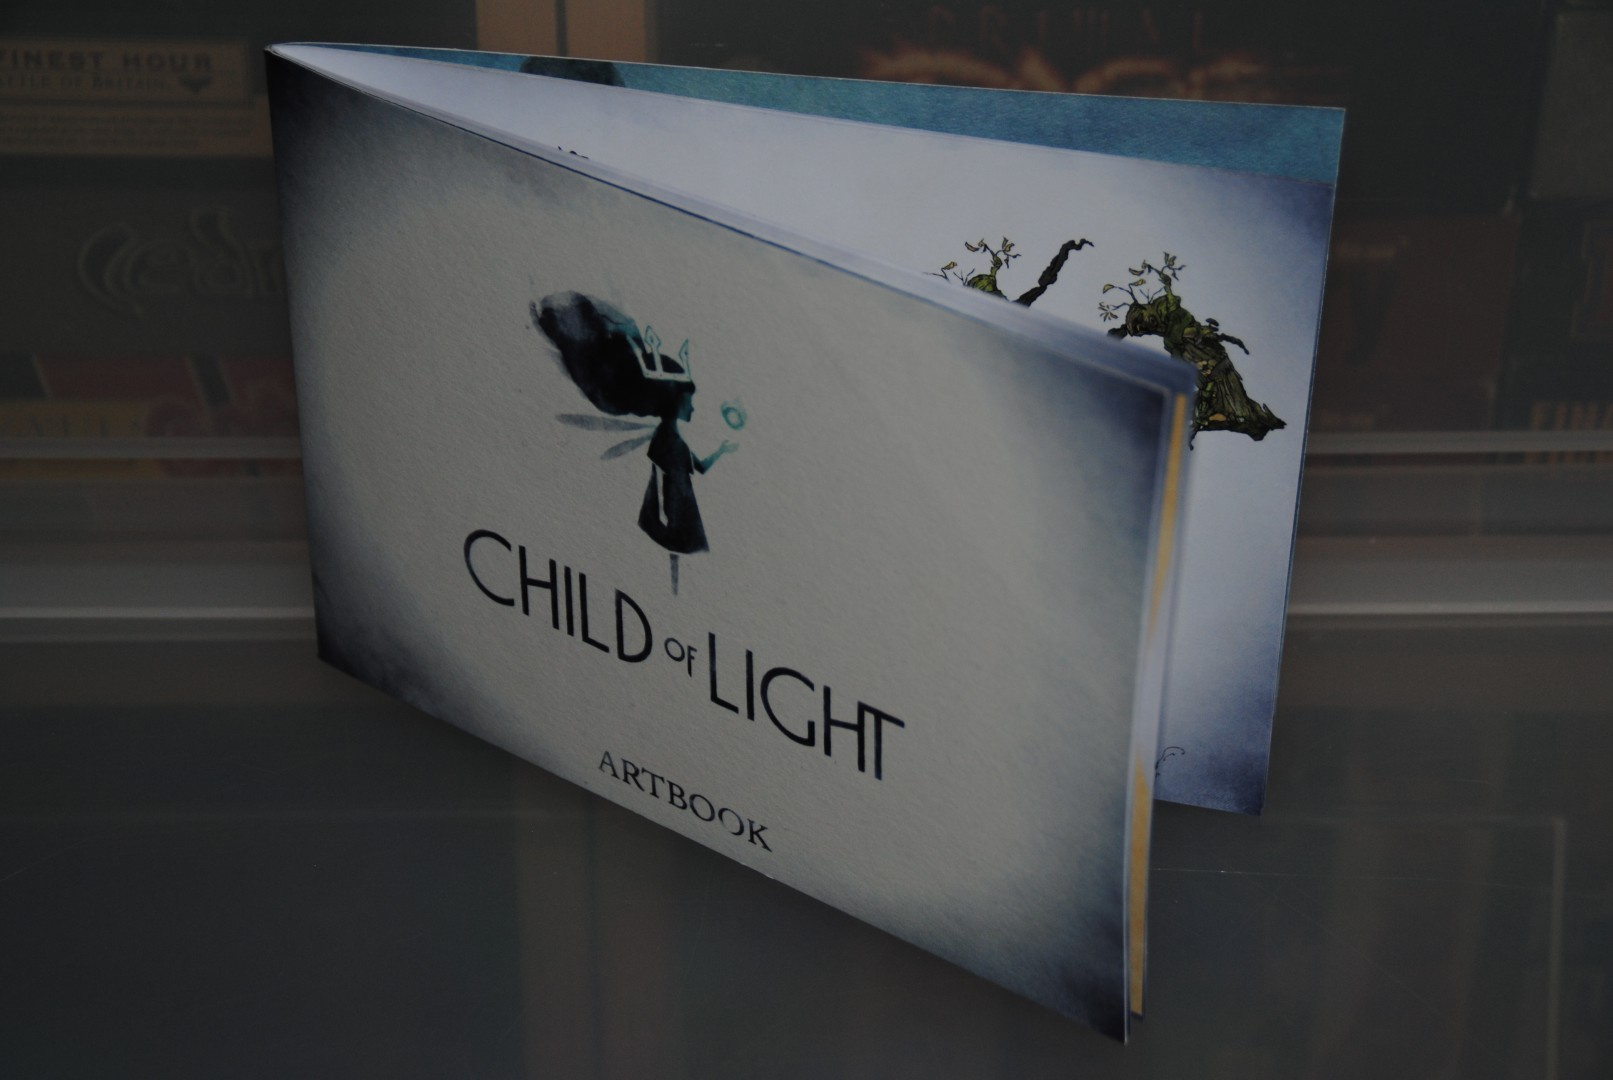 Artbook, Child Of Light